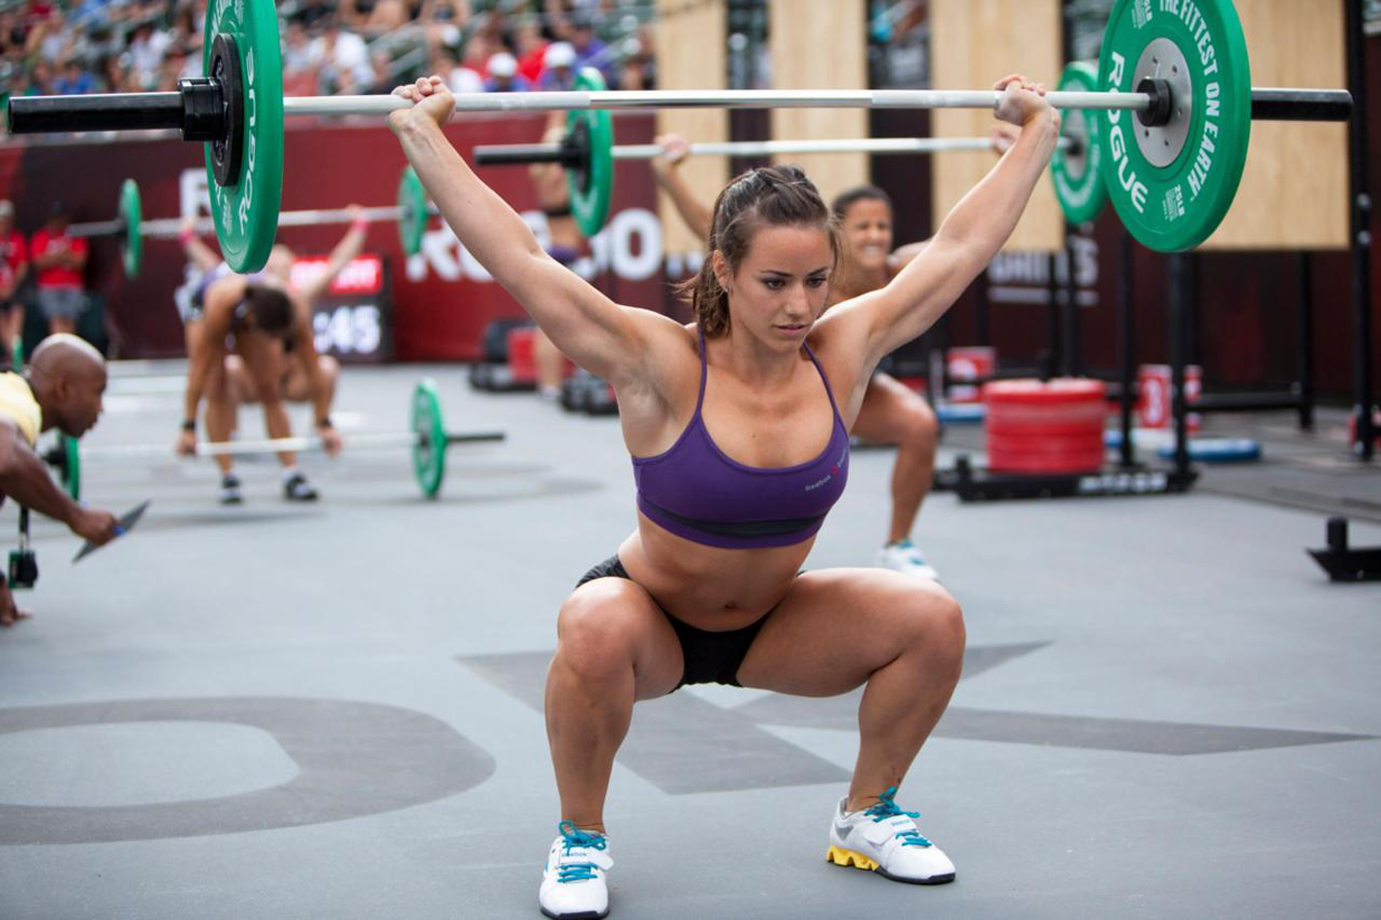 Age: 26 | Height: 5'2"